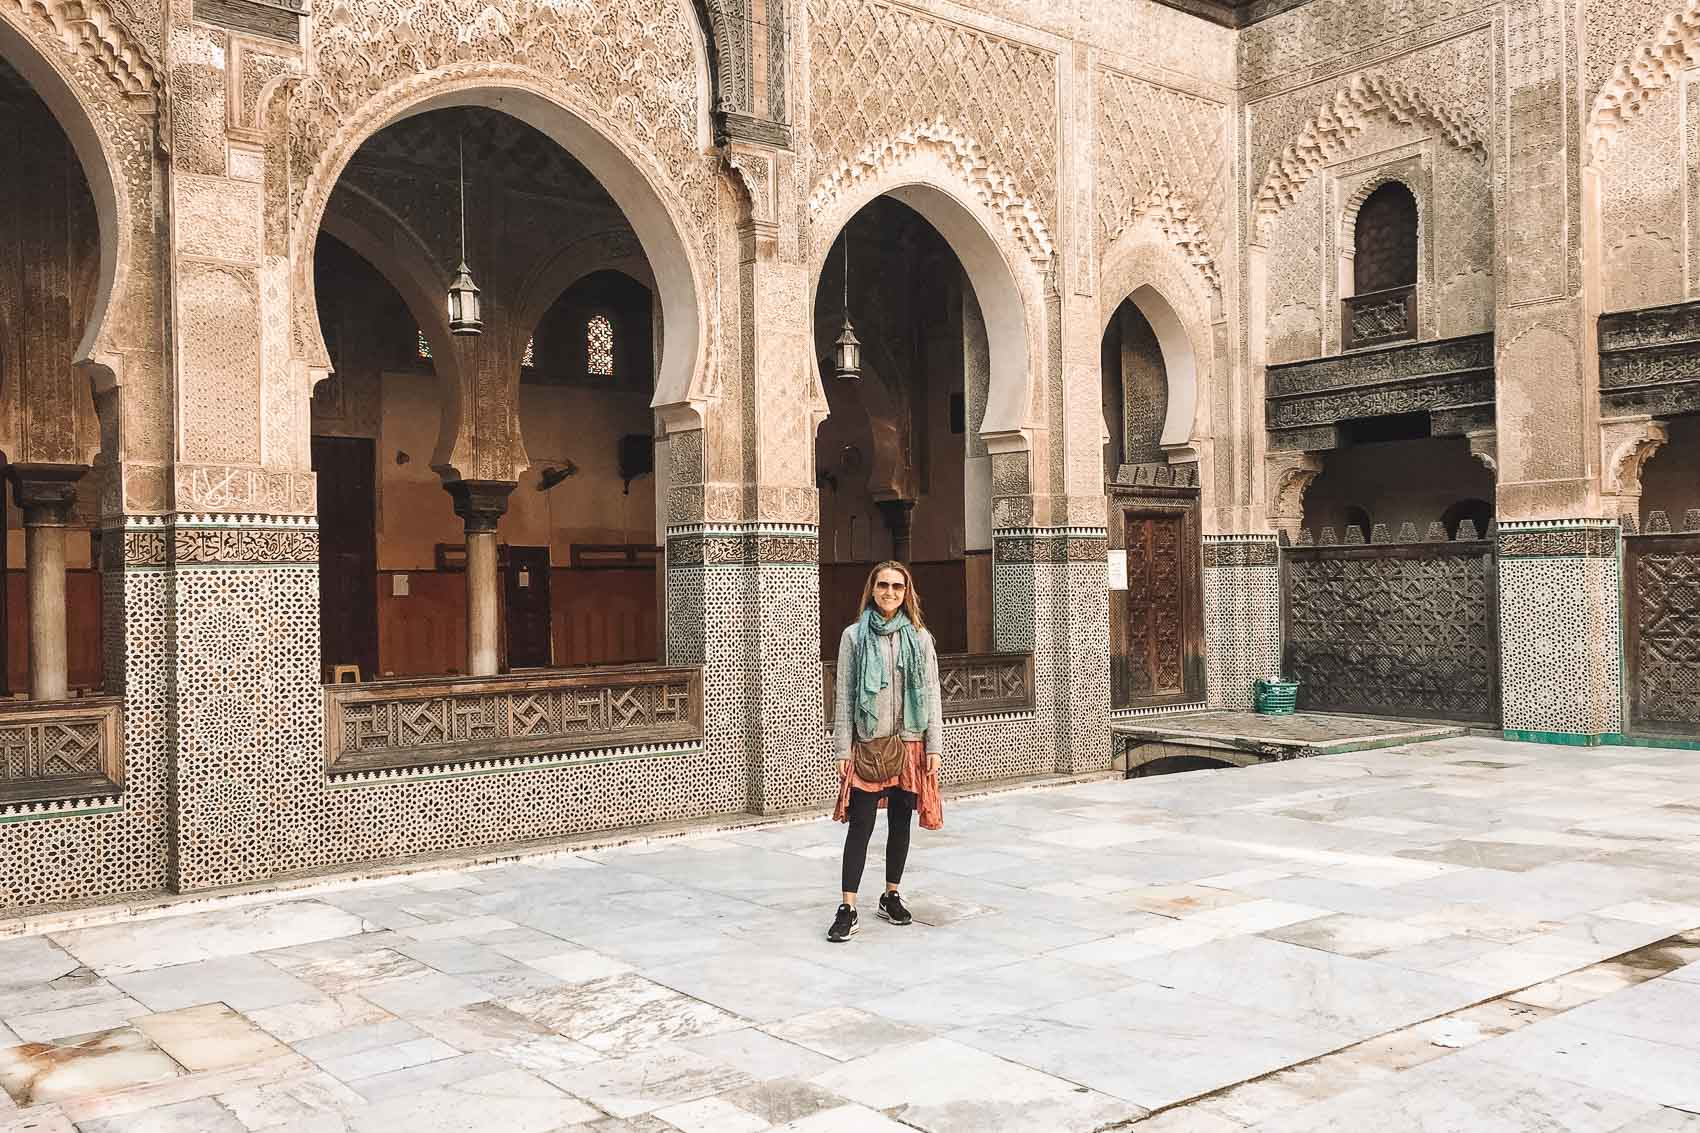 Hannah standing inside Madrasa Bou Inania in Fes Morocco - bucket list travel